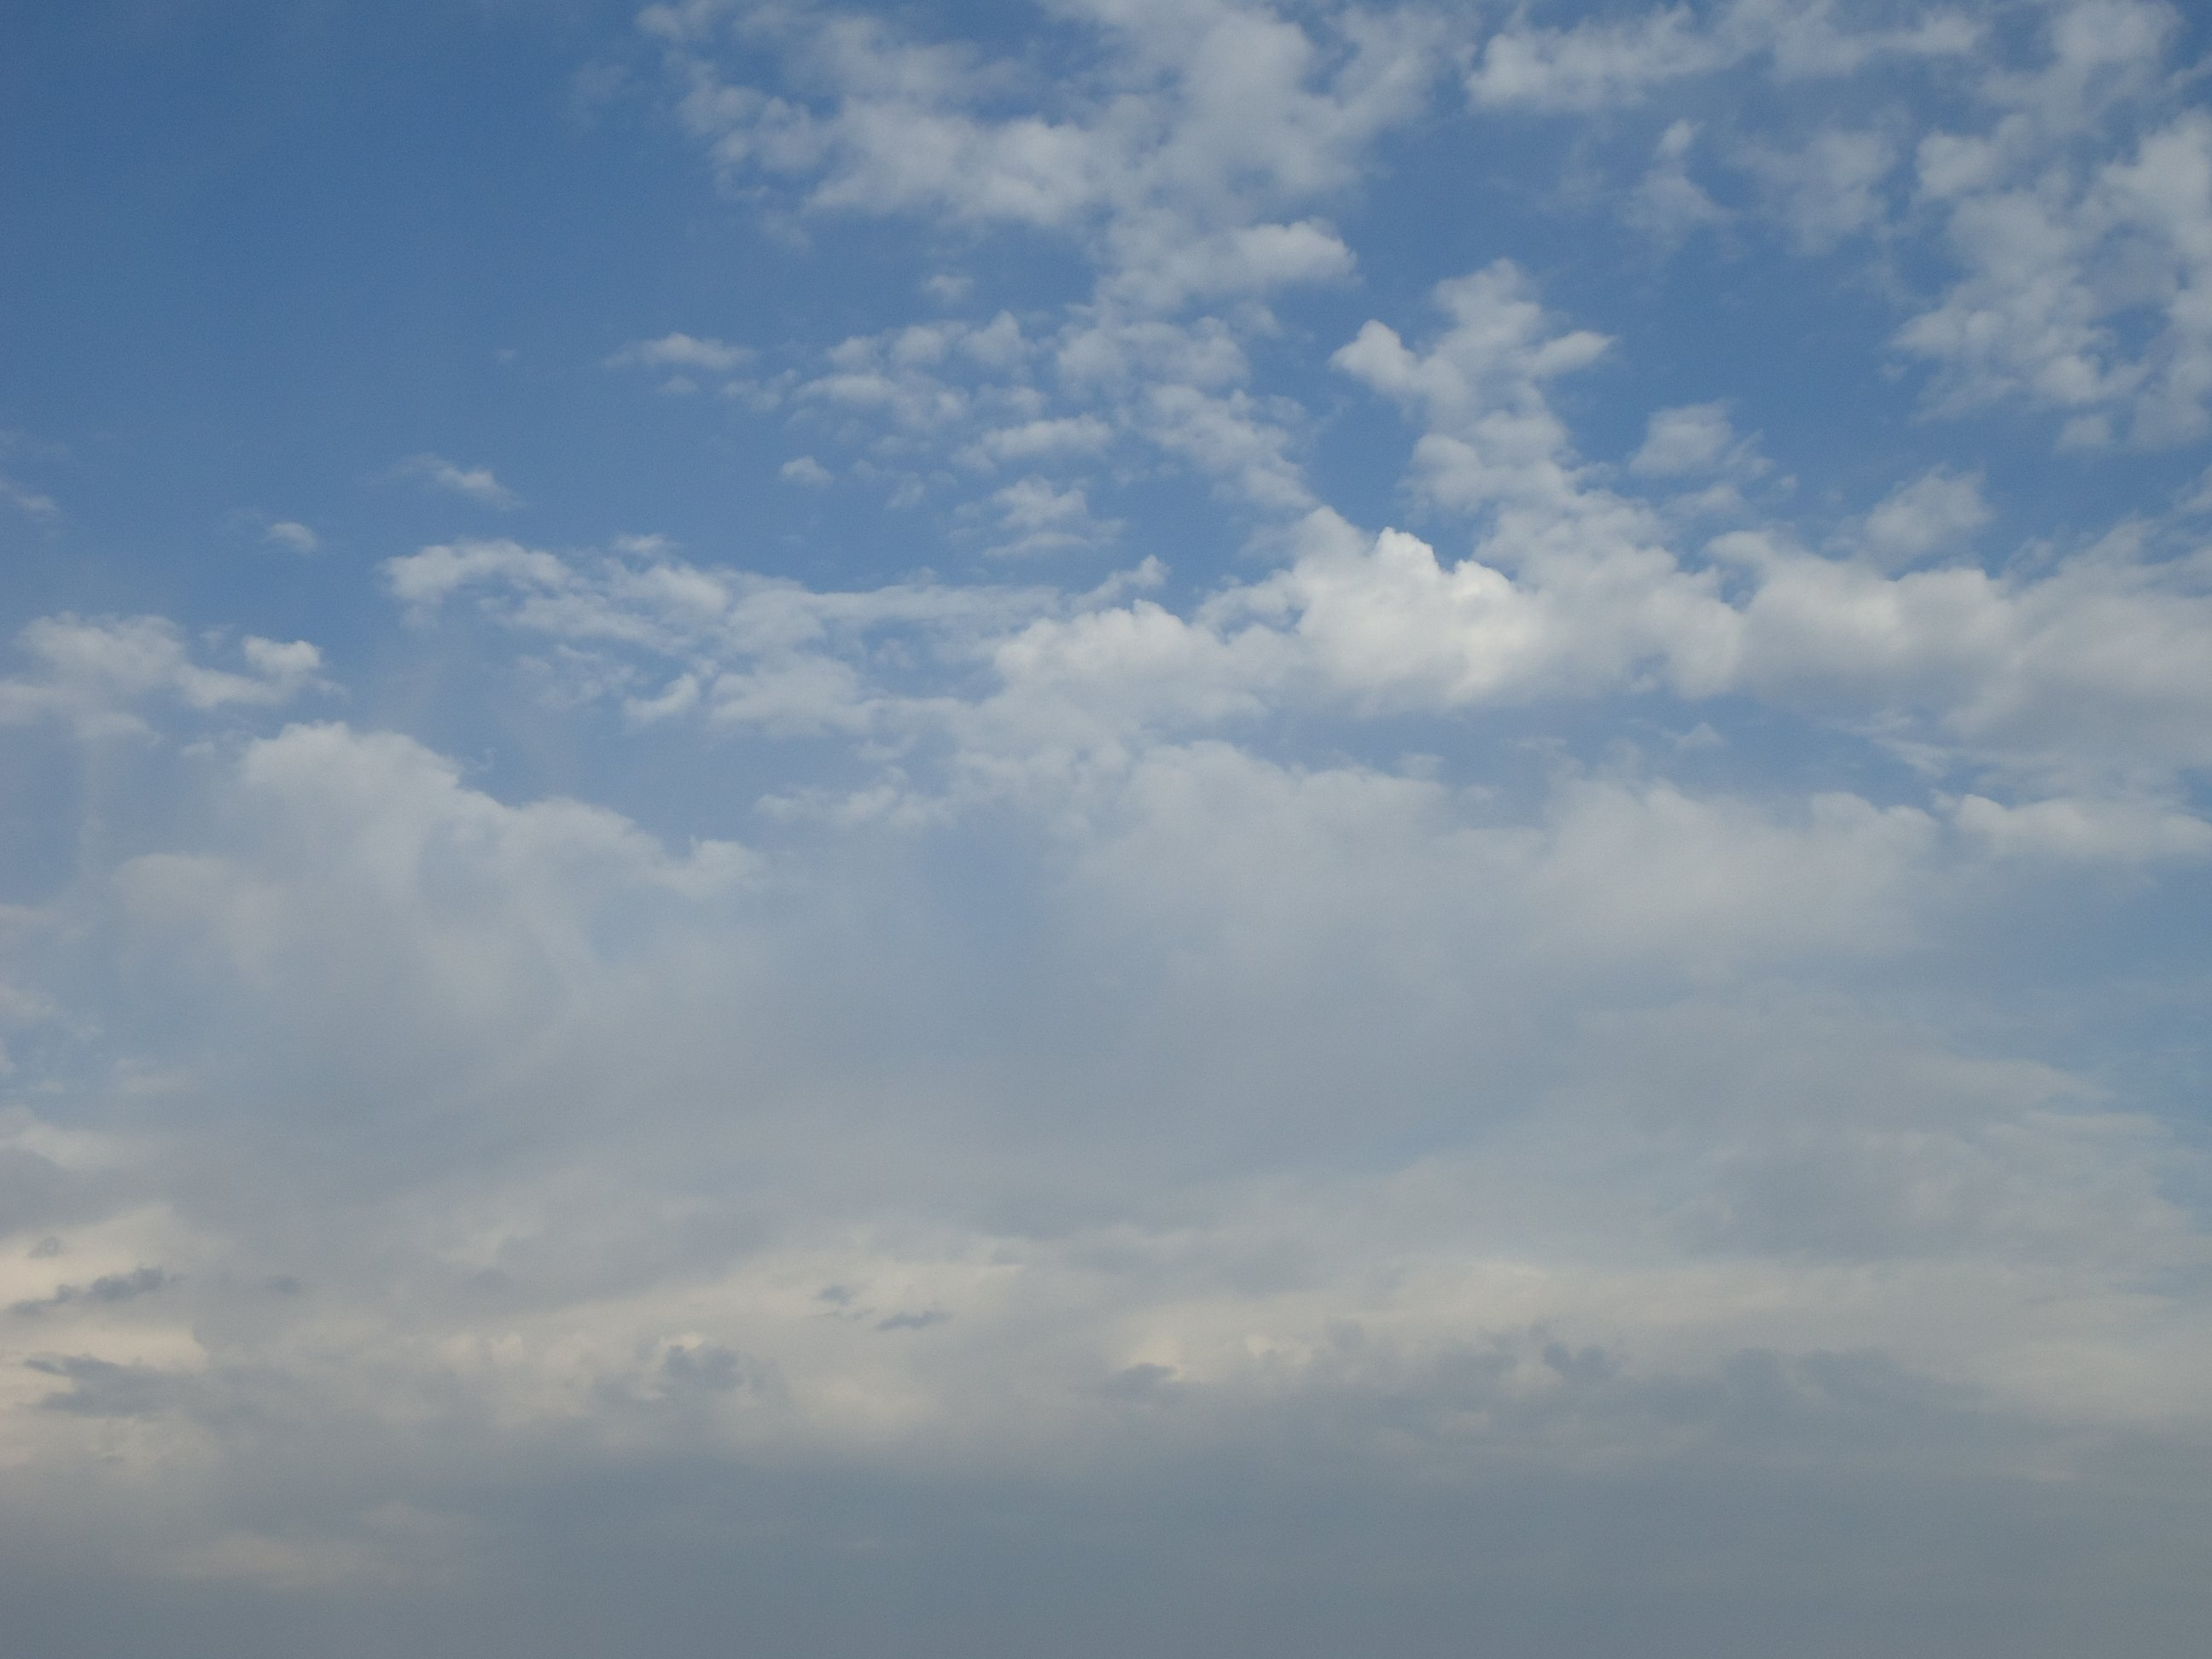 Cloud patterns in partly cloudy sky.